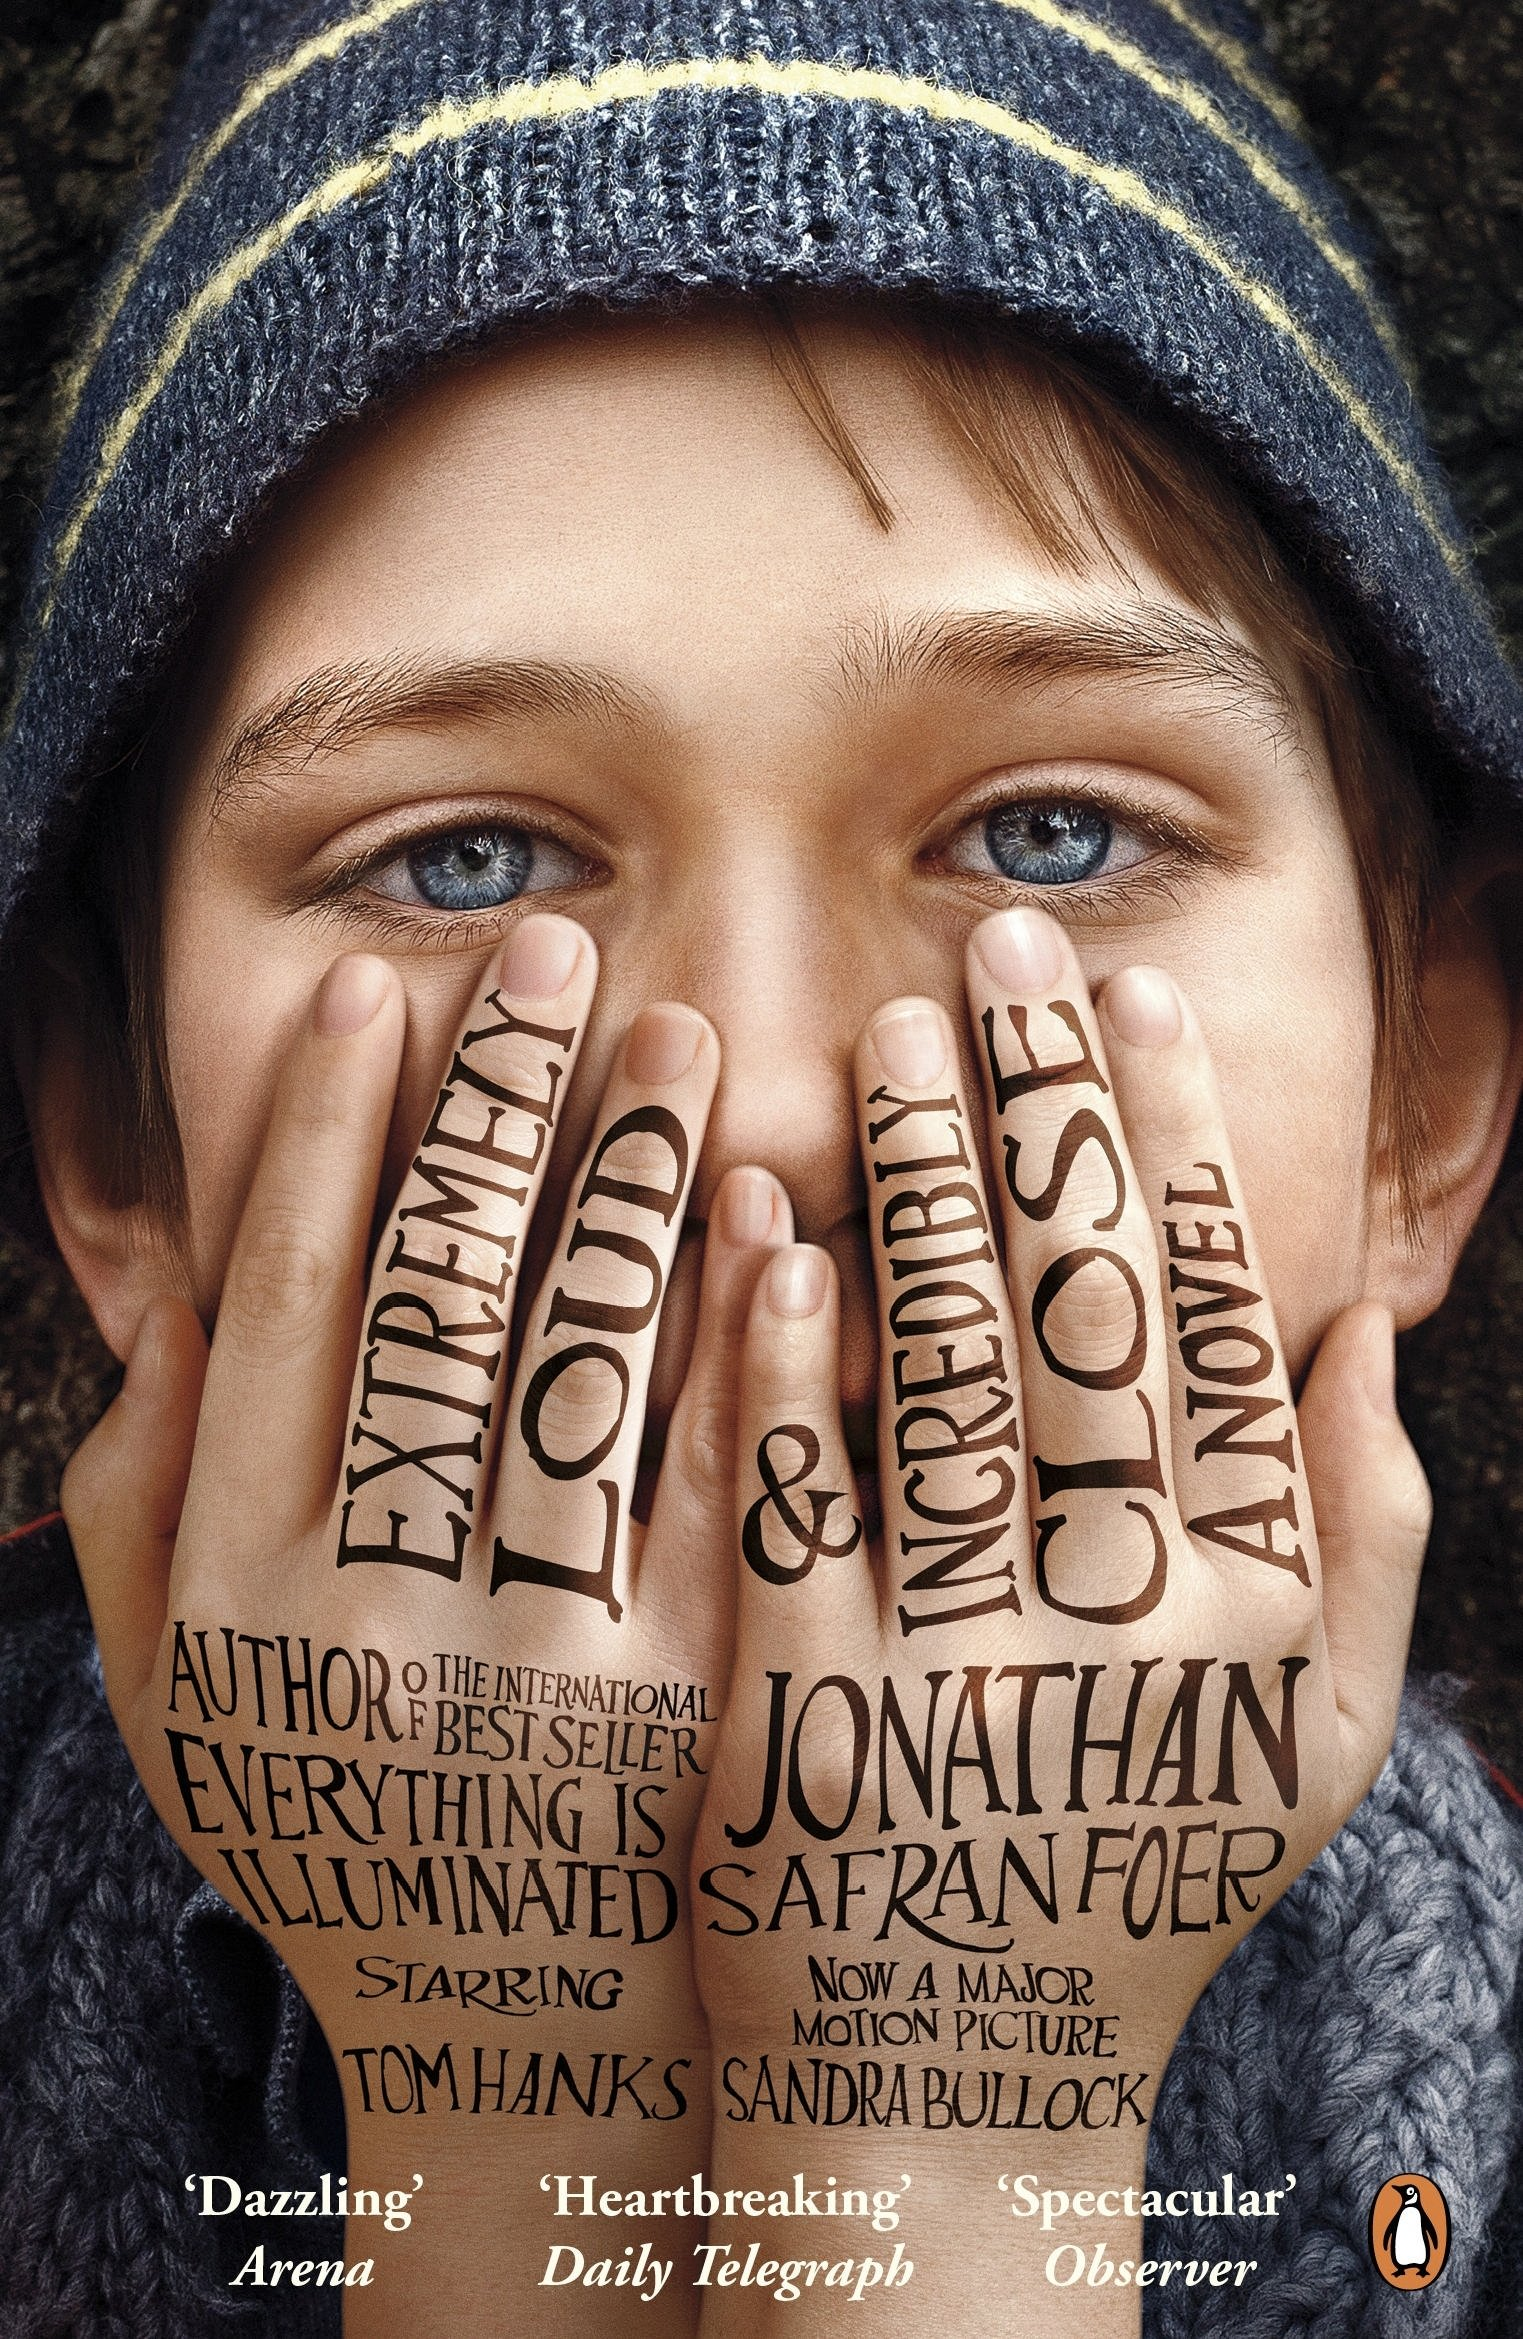 Extremely  loud & incredibly close / Jonathen Safran